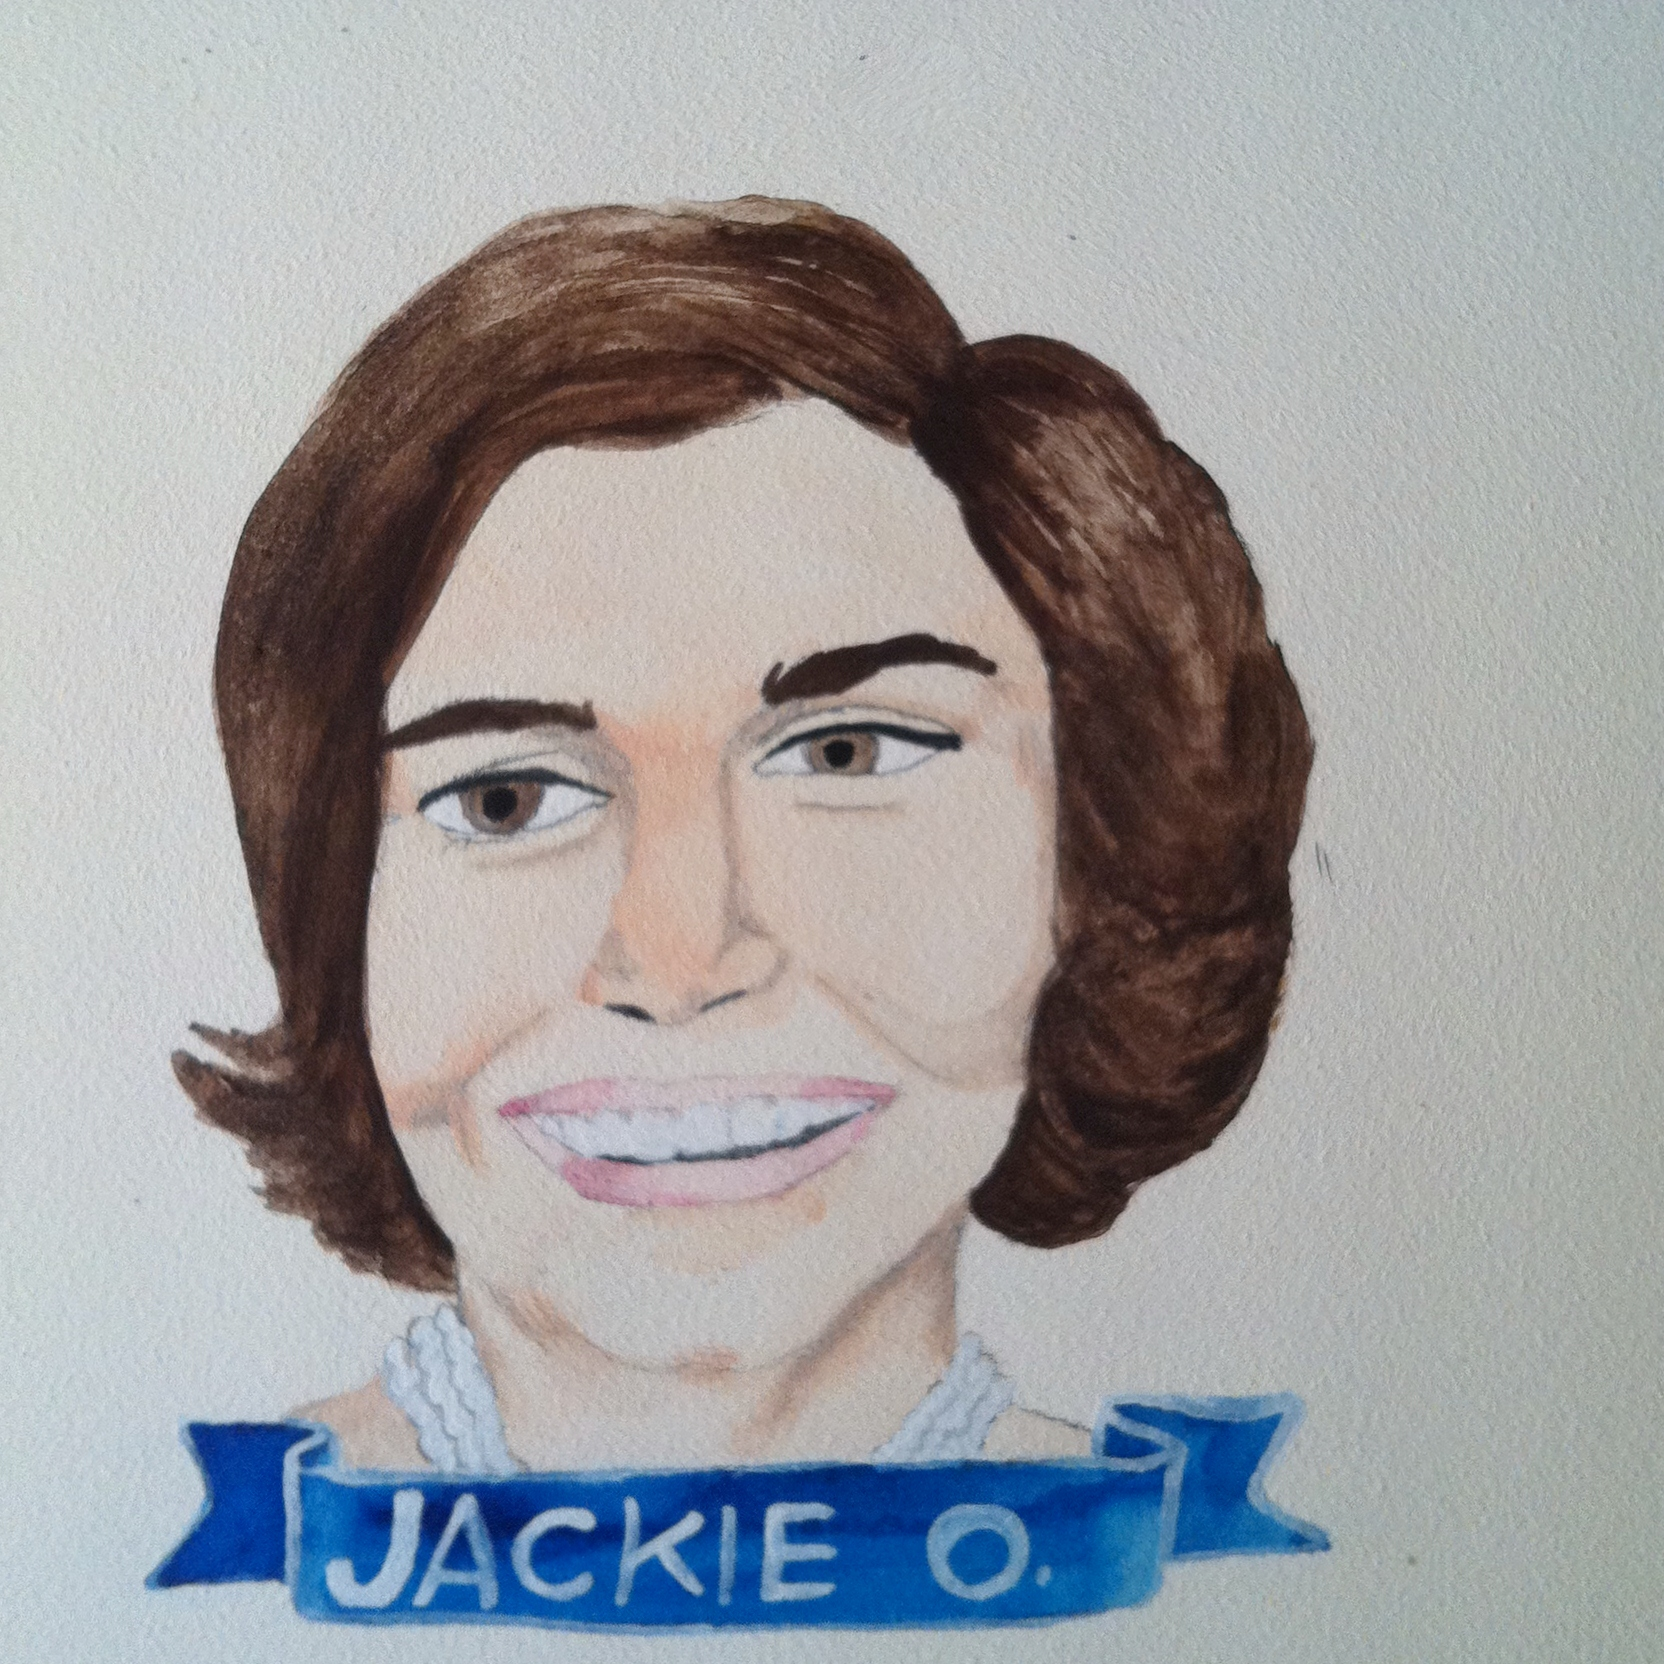 Talent Loves Company at Barbara Archer Gallery: 365 portraits by Lydia Walls - Jackie O